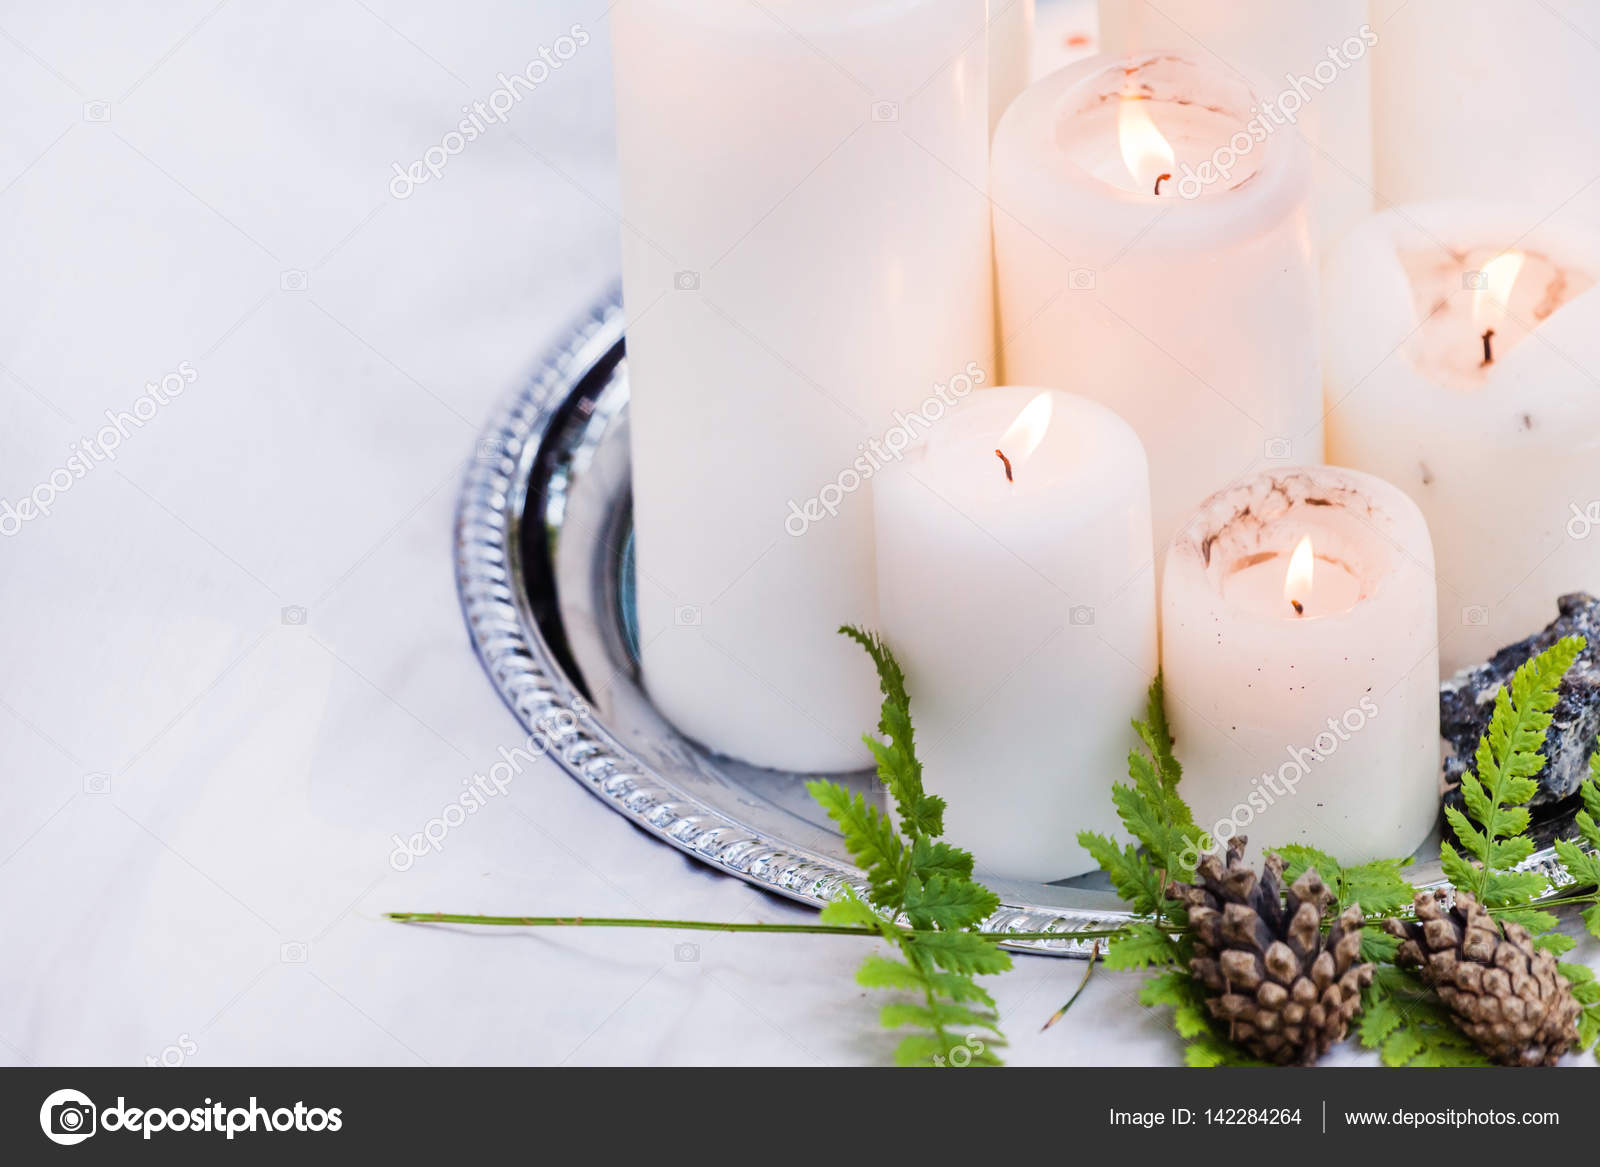 wedding decorations with candles — Stock Photo © Shebeko #142284264